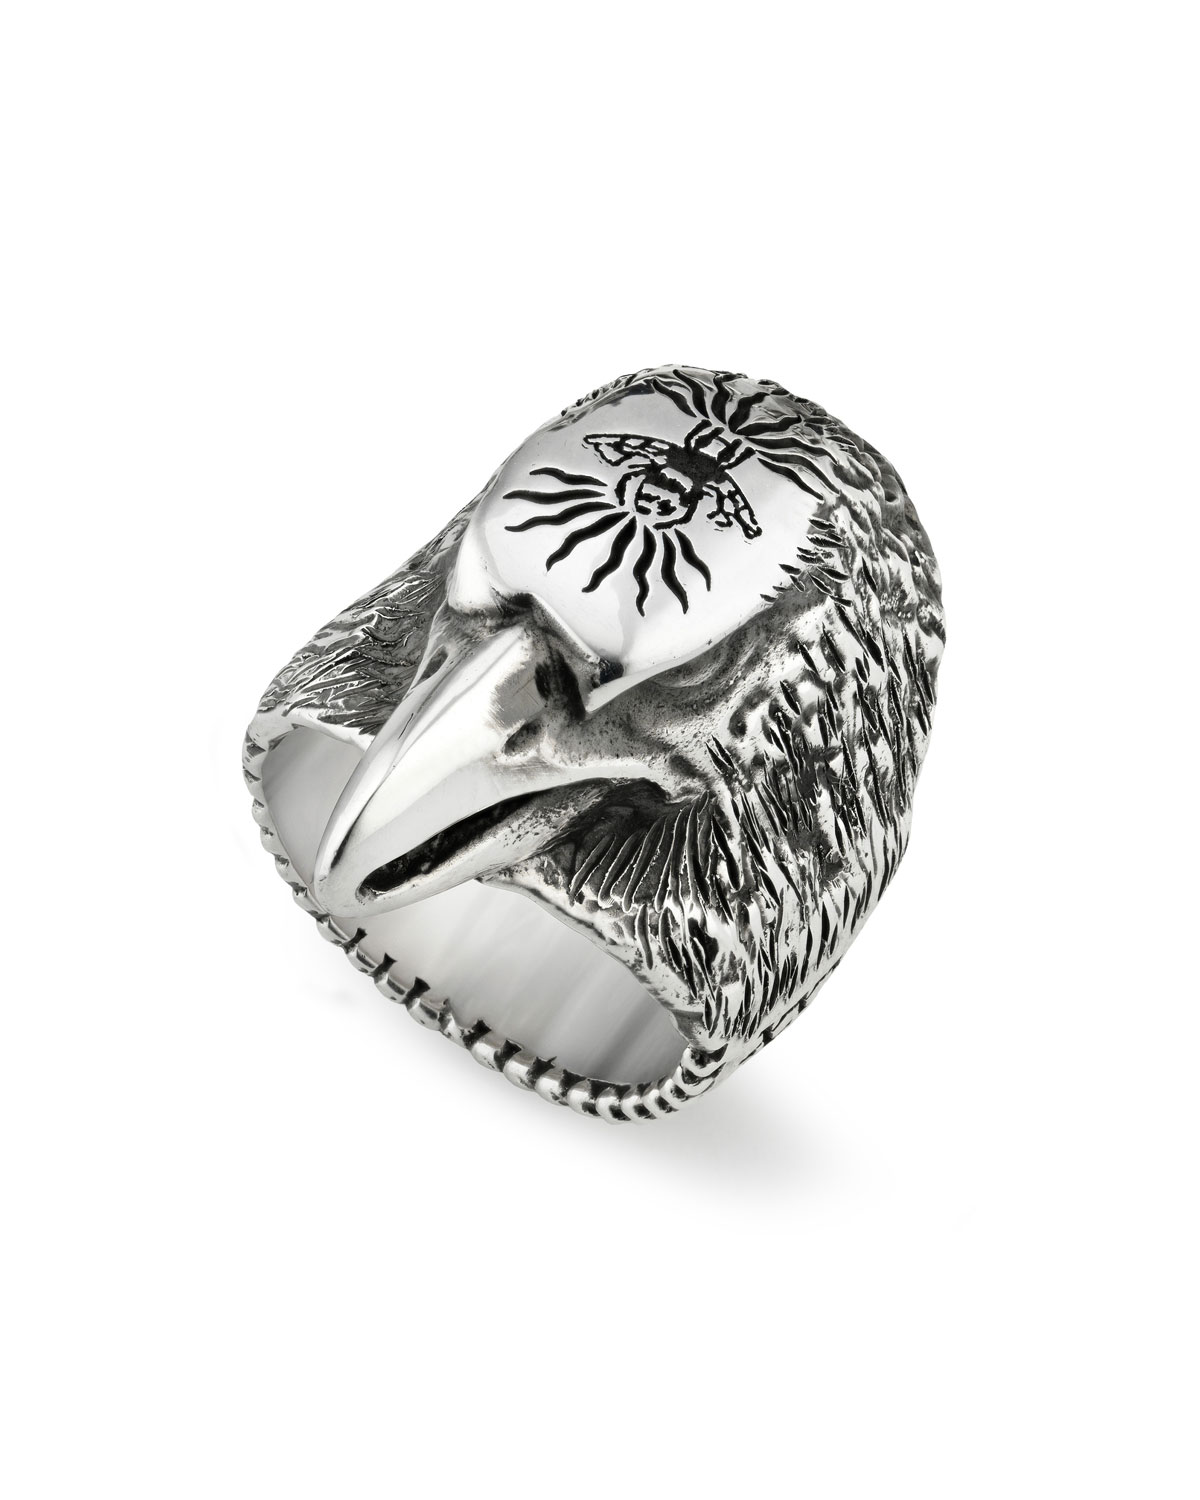 Eagle Head Sterling Silver Ring Gucci EomWOEU6l